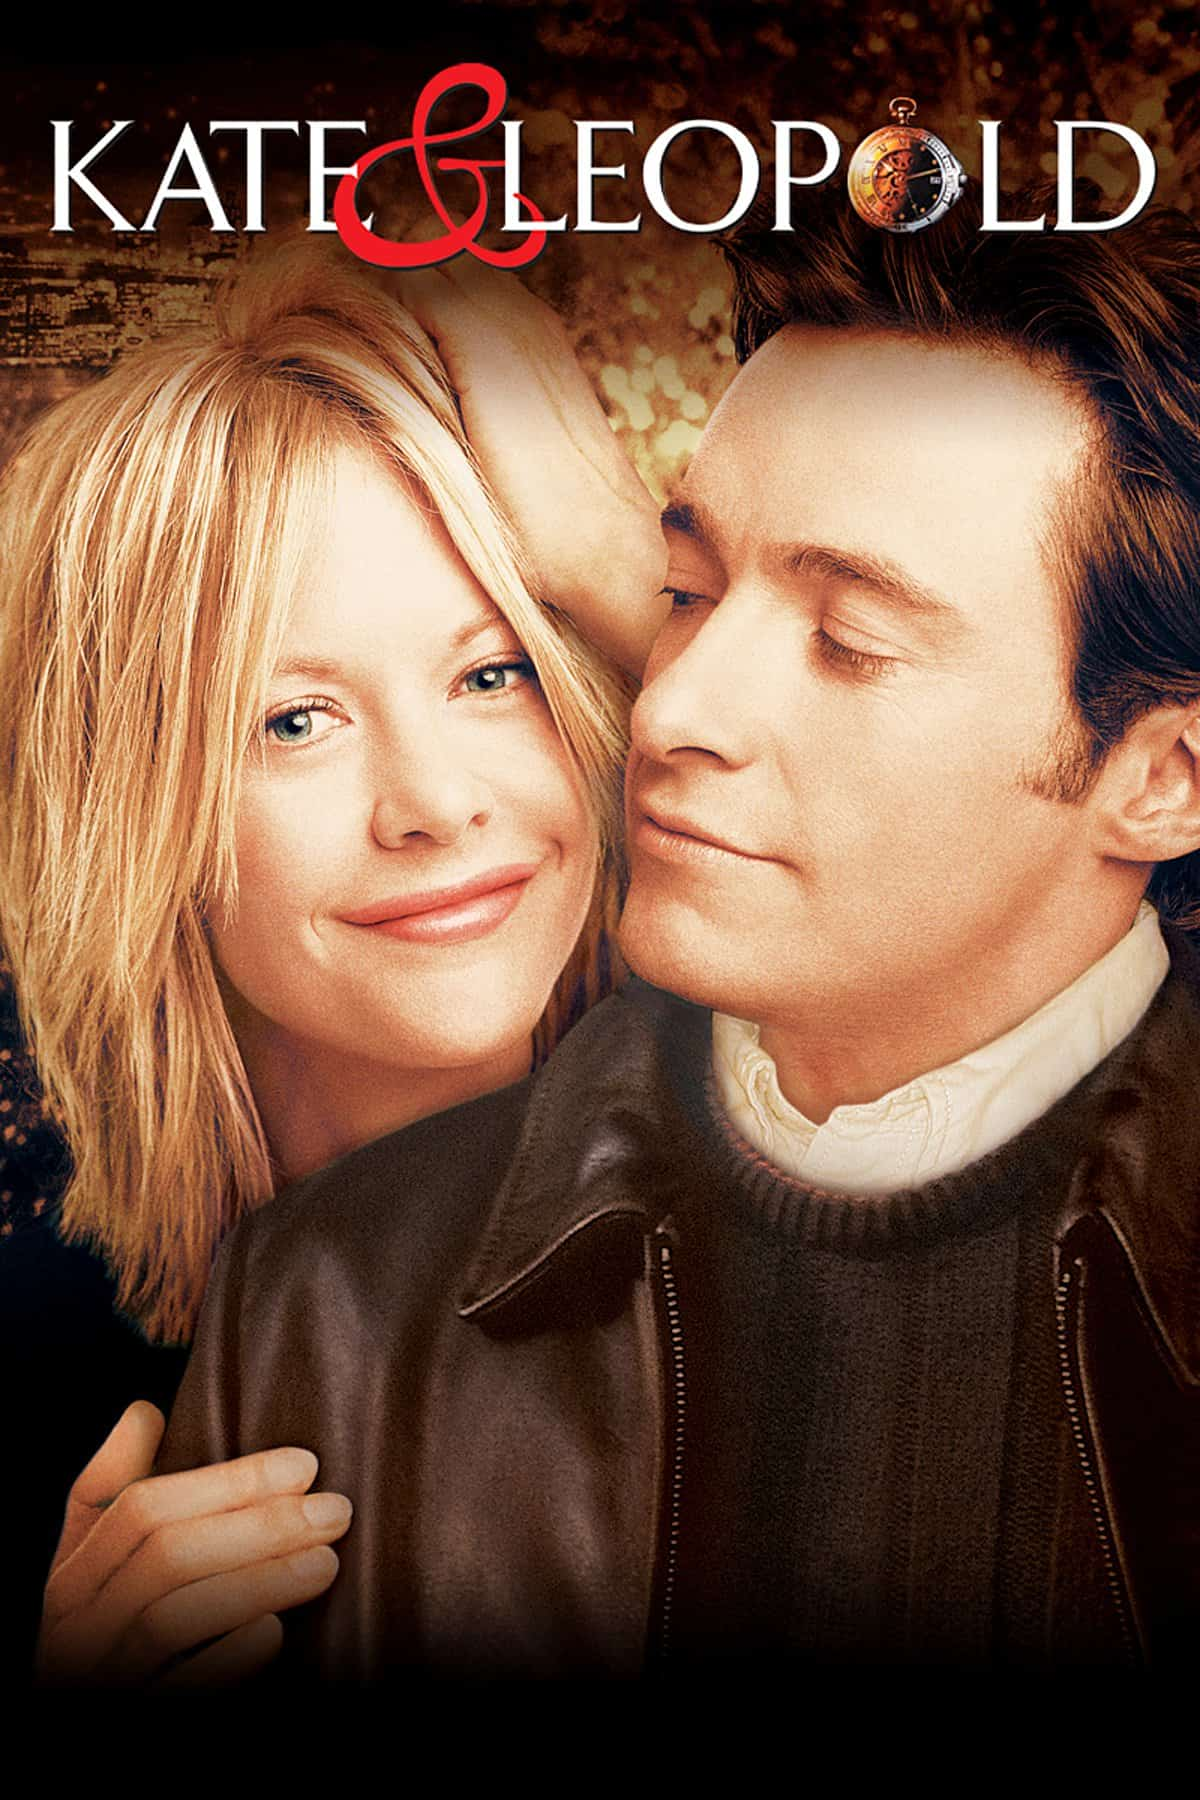 Kate and Leopold, 2001